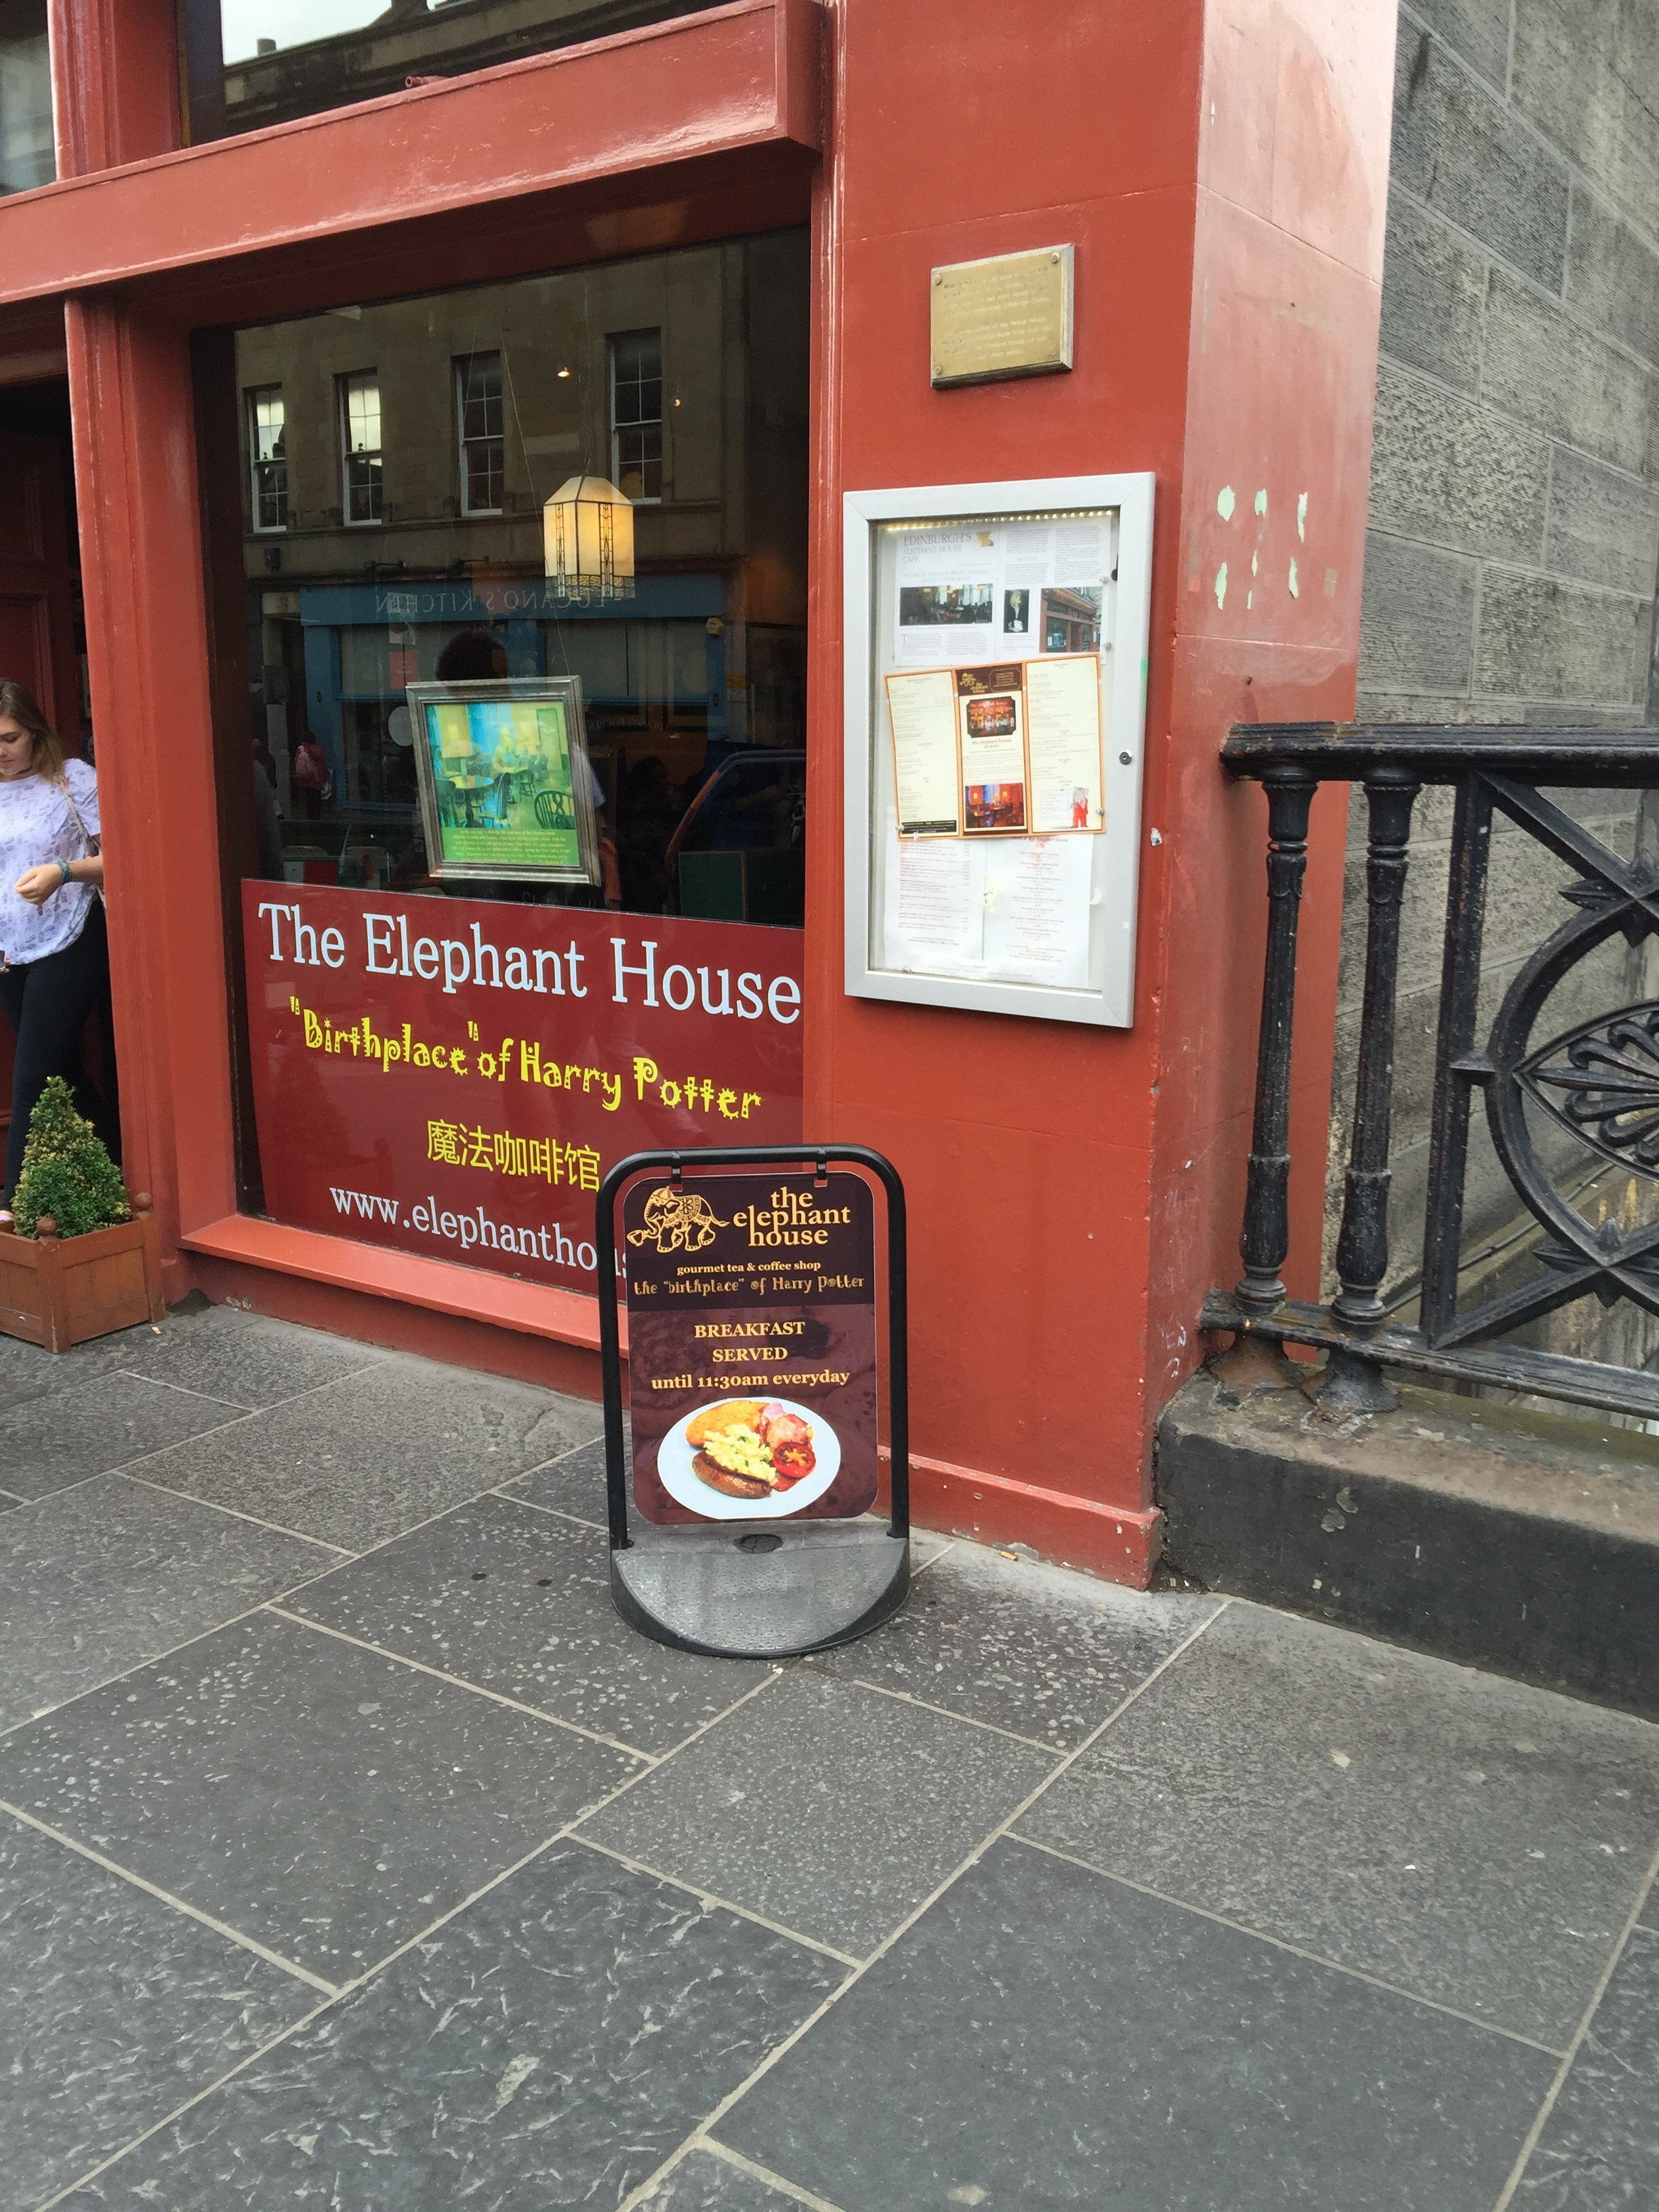 The Elephant House - JK Rowling wrote Harry Potter here!!